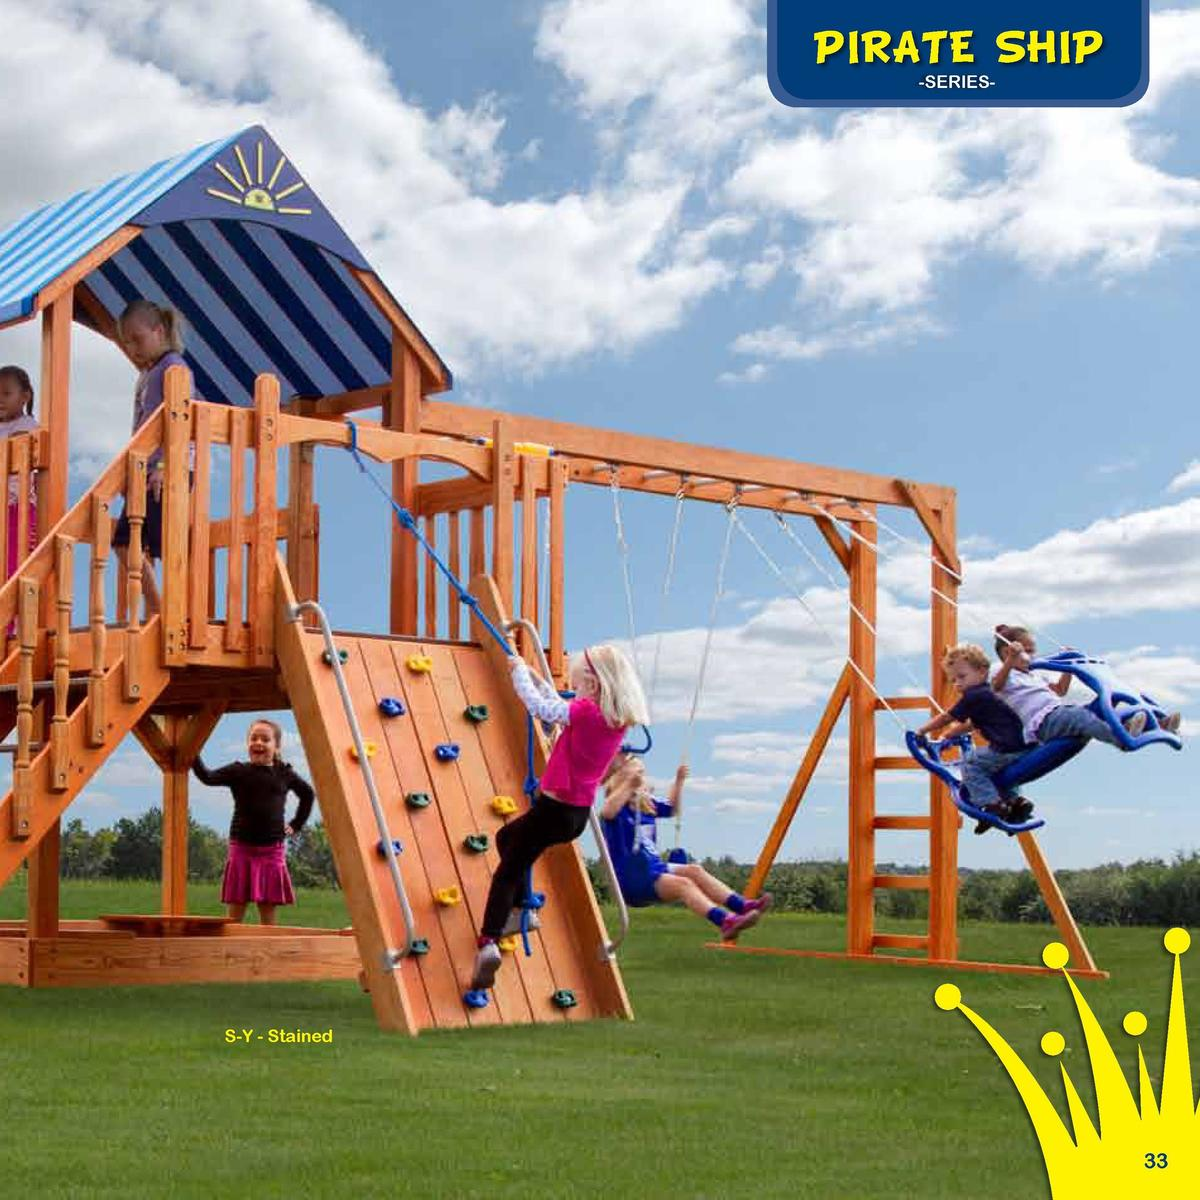 Play Deck Roofing Choices  PIRATE SHIP  The Sea King  -SERIESFabric  Plastic  Clap Board  Border Needed   98   Rubber Mulc...